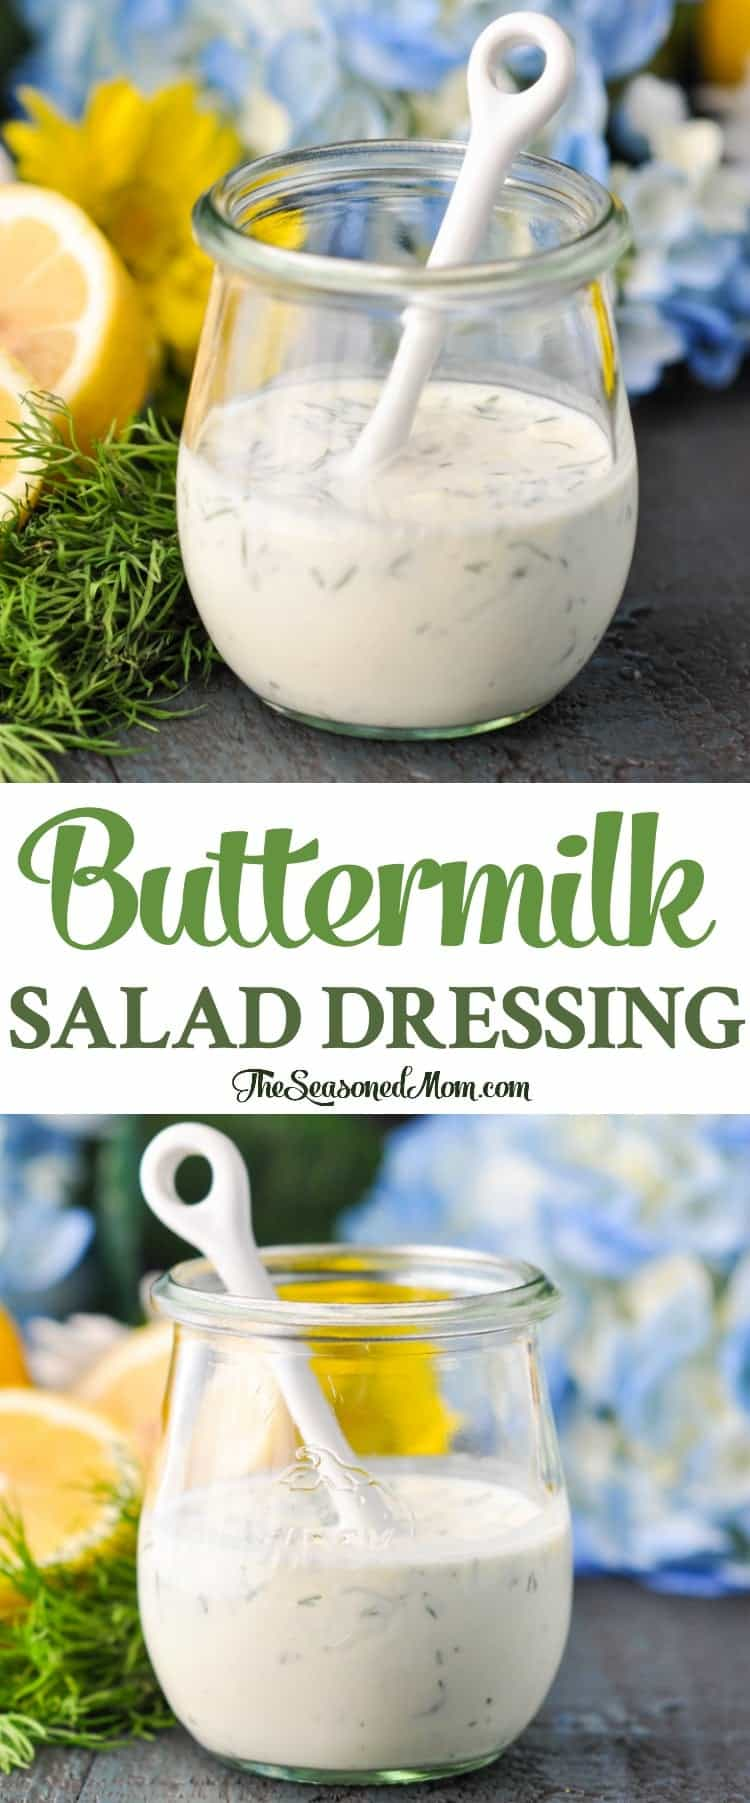 Buttermilk Salad Dressing Recipe | Salads | Salad Recipes | Sides | Healthy Salads | Healthy Salad Dressing | Salad Dressings